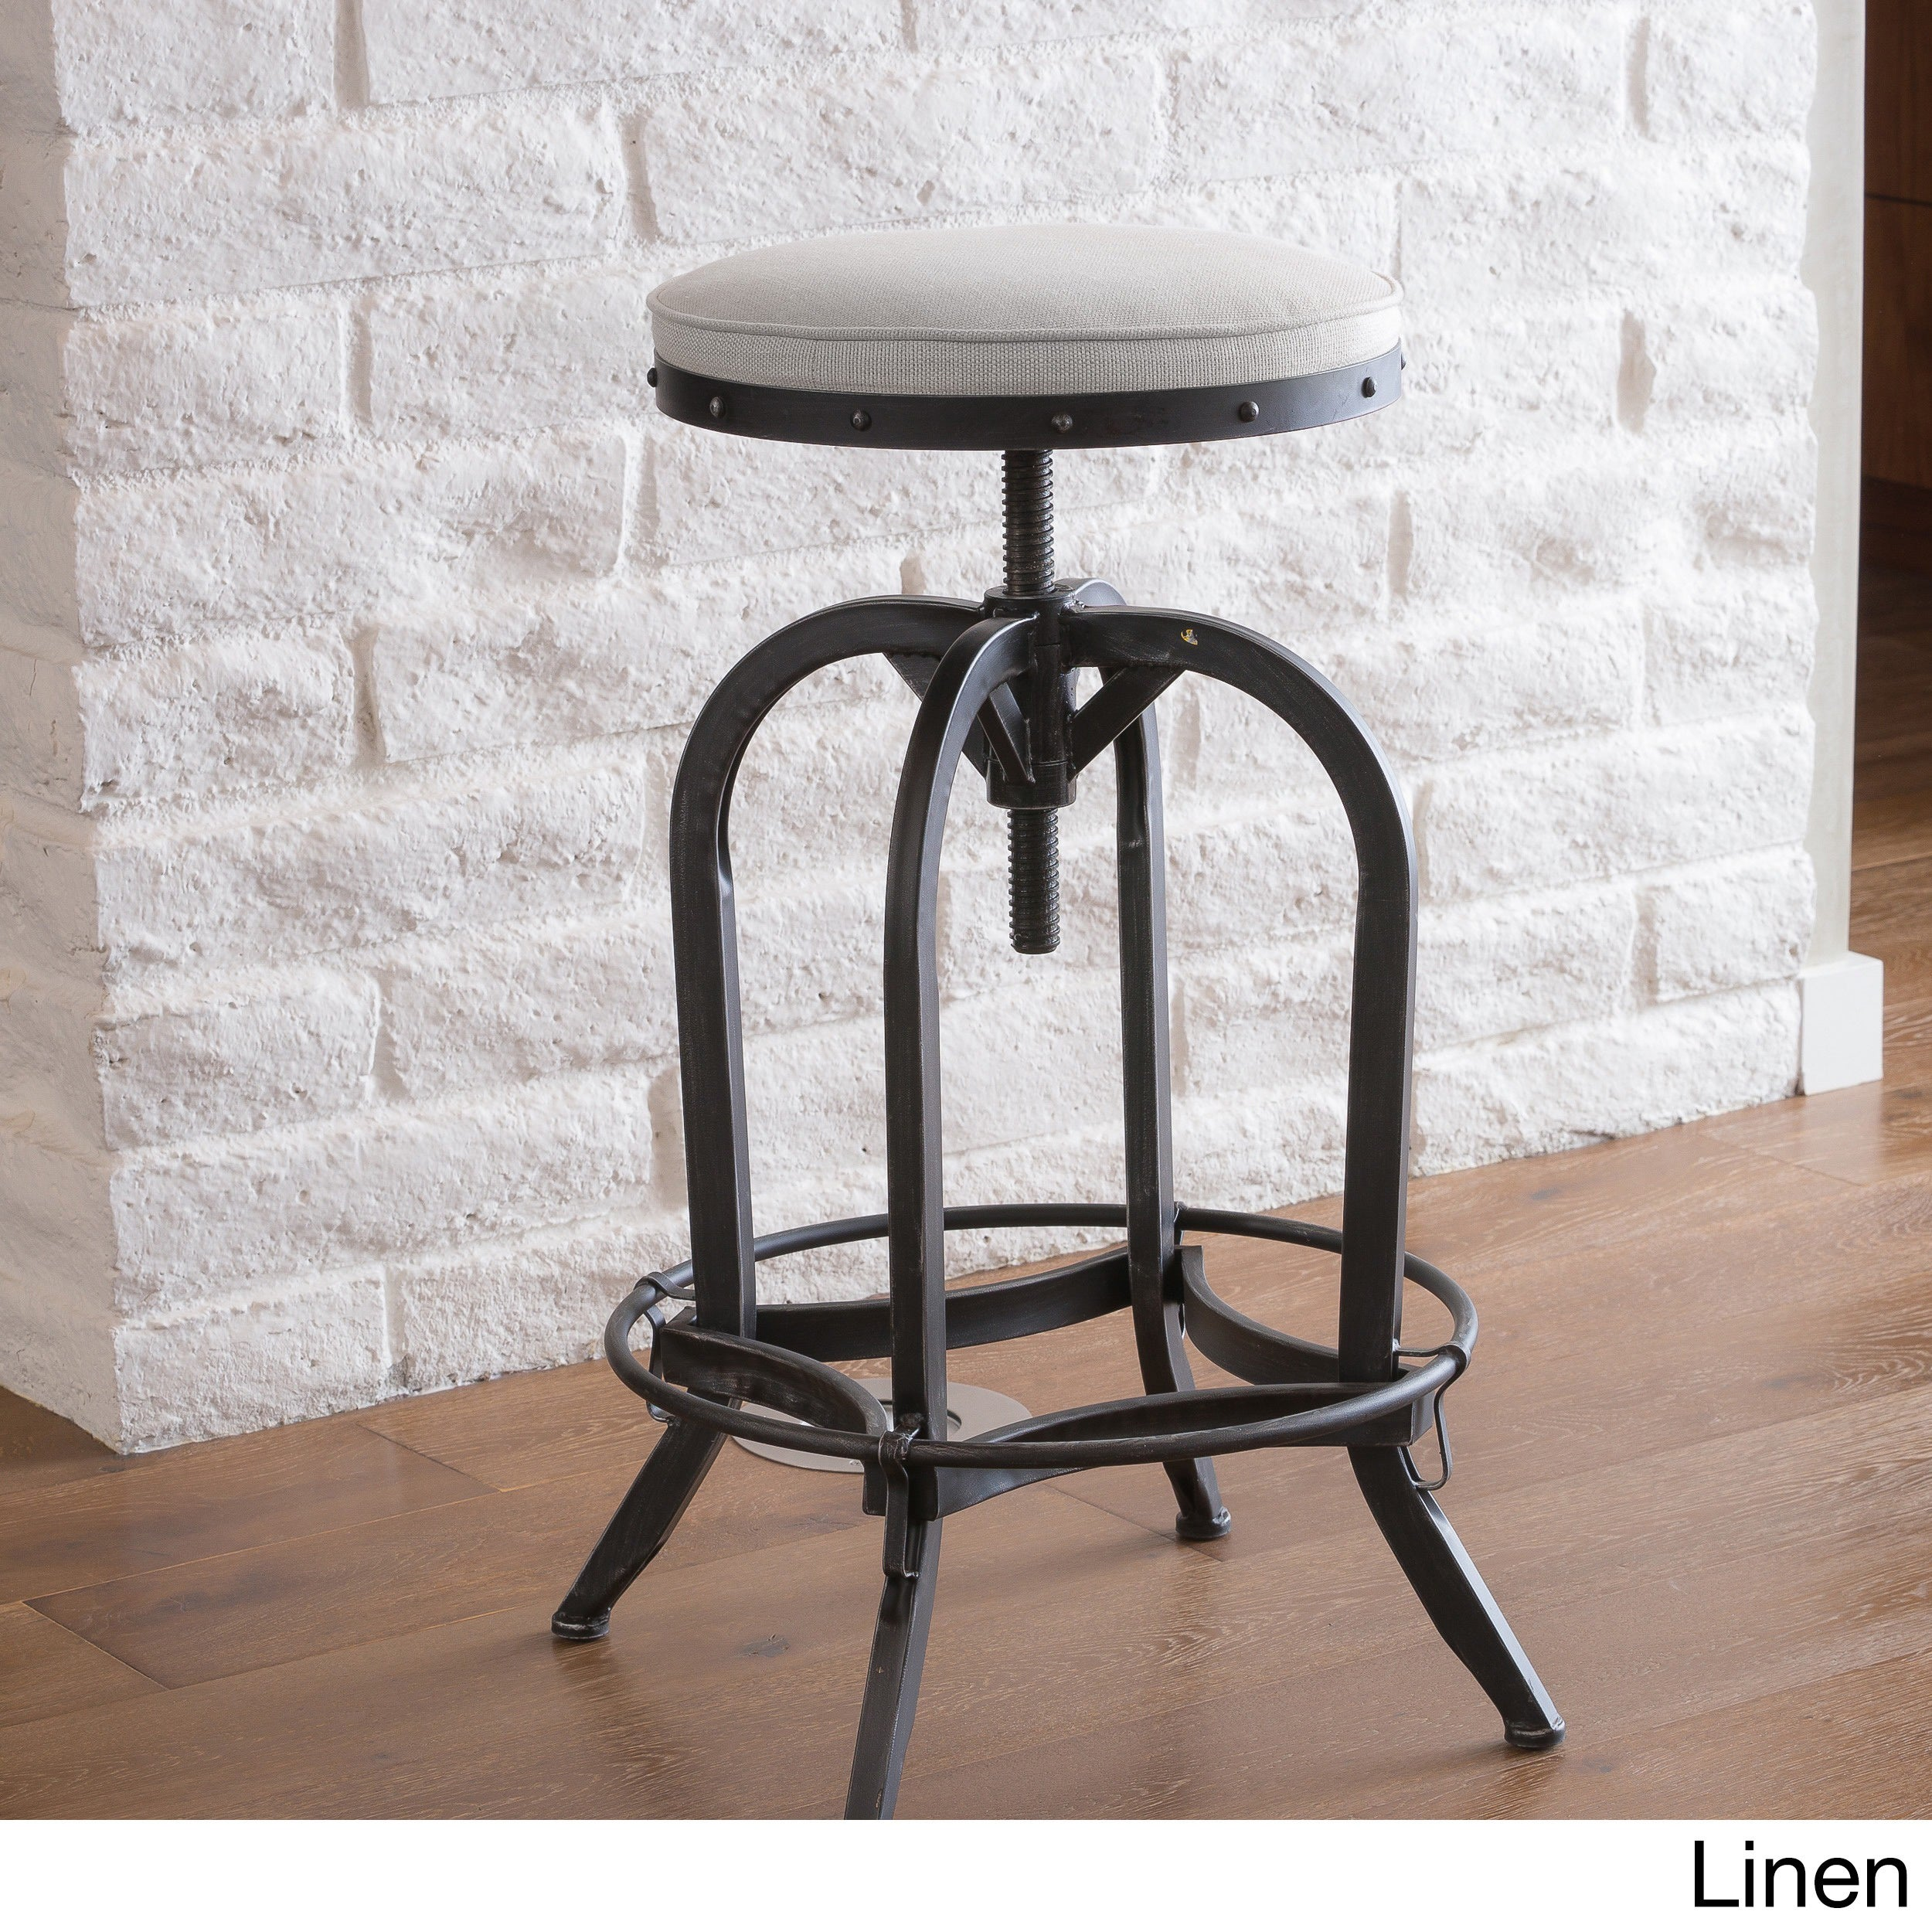 Shop gunner 28 inch swivel iron bar stool by christopher knight home 27 5 33 25h x 18 5w on sale free shipping today overstock com 8672657